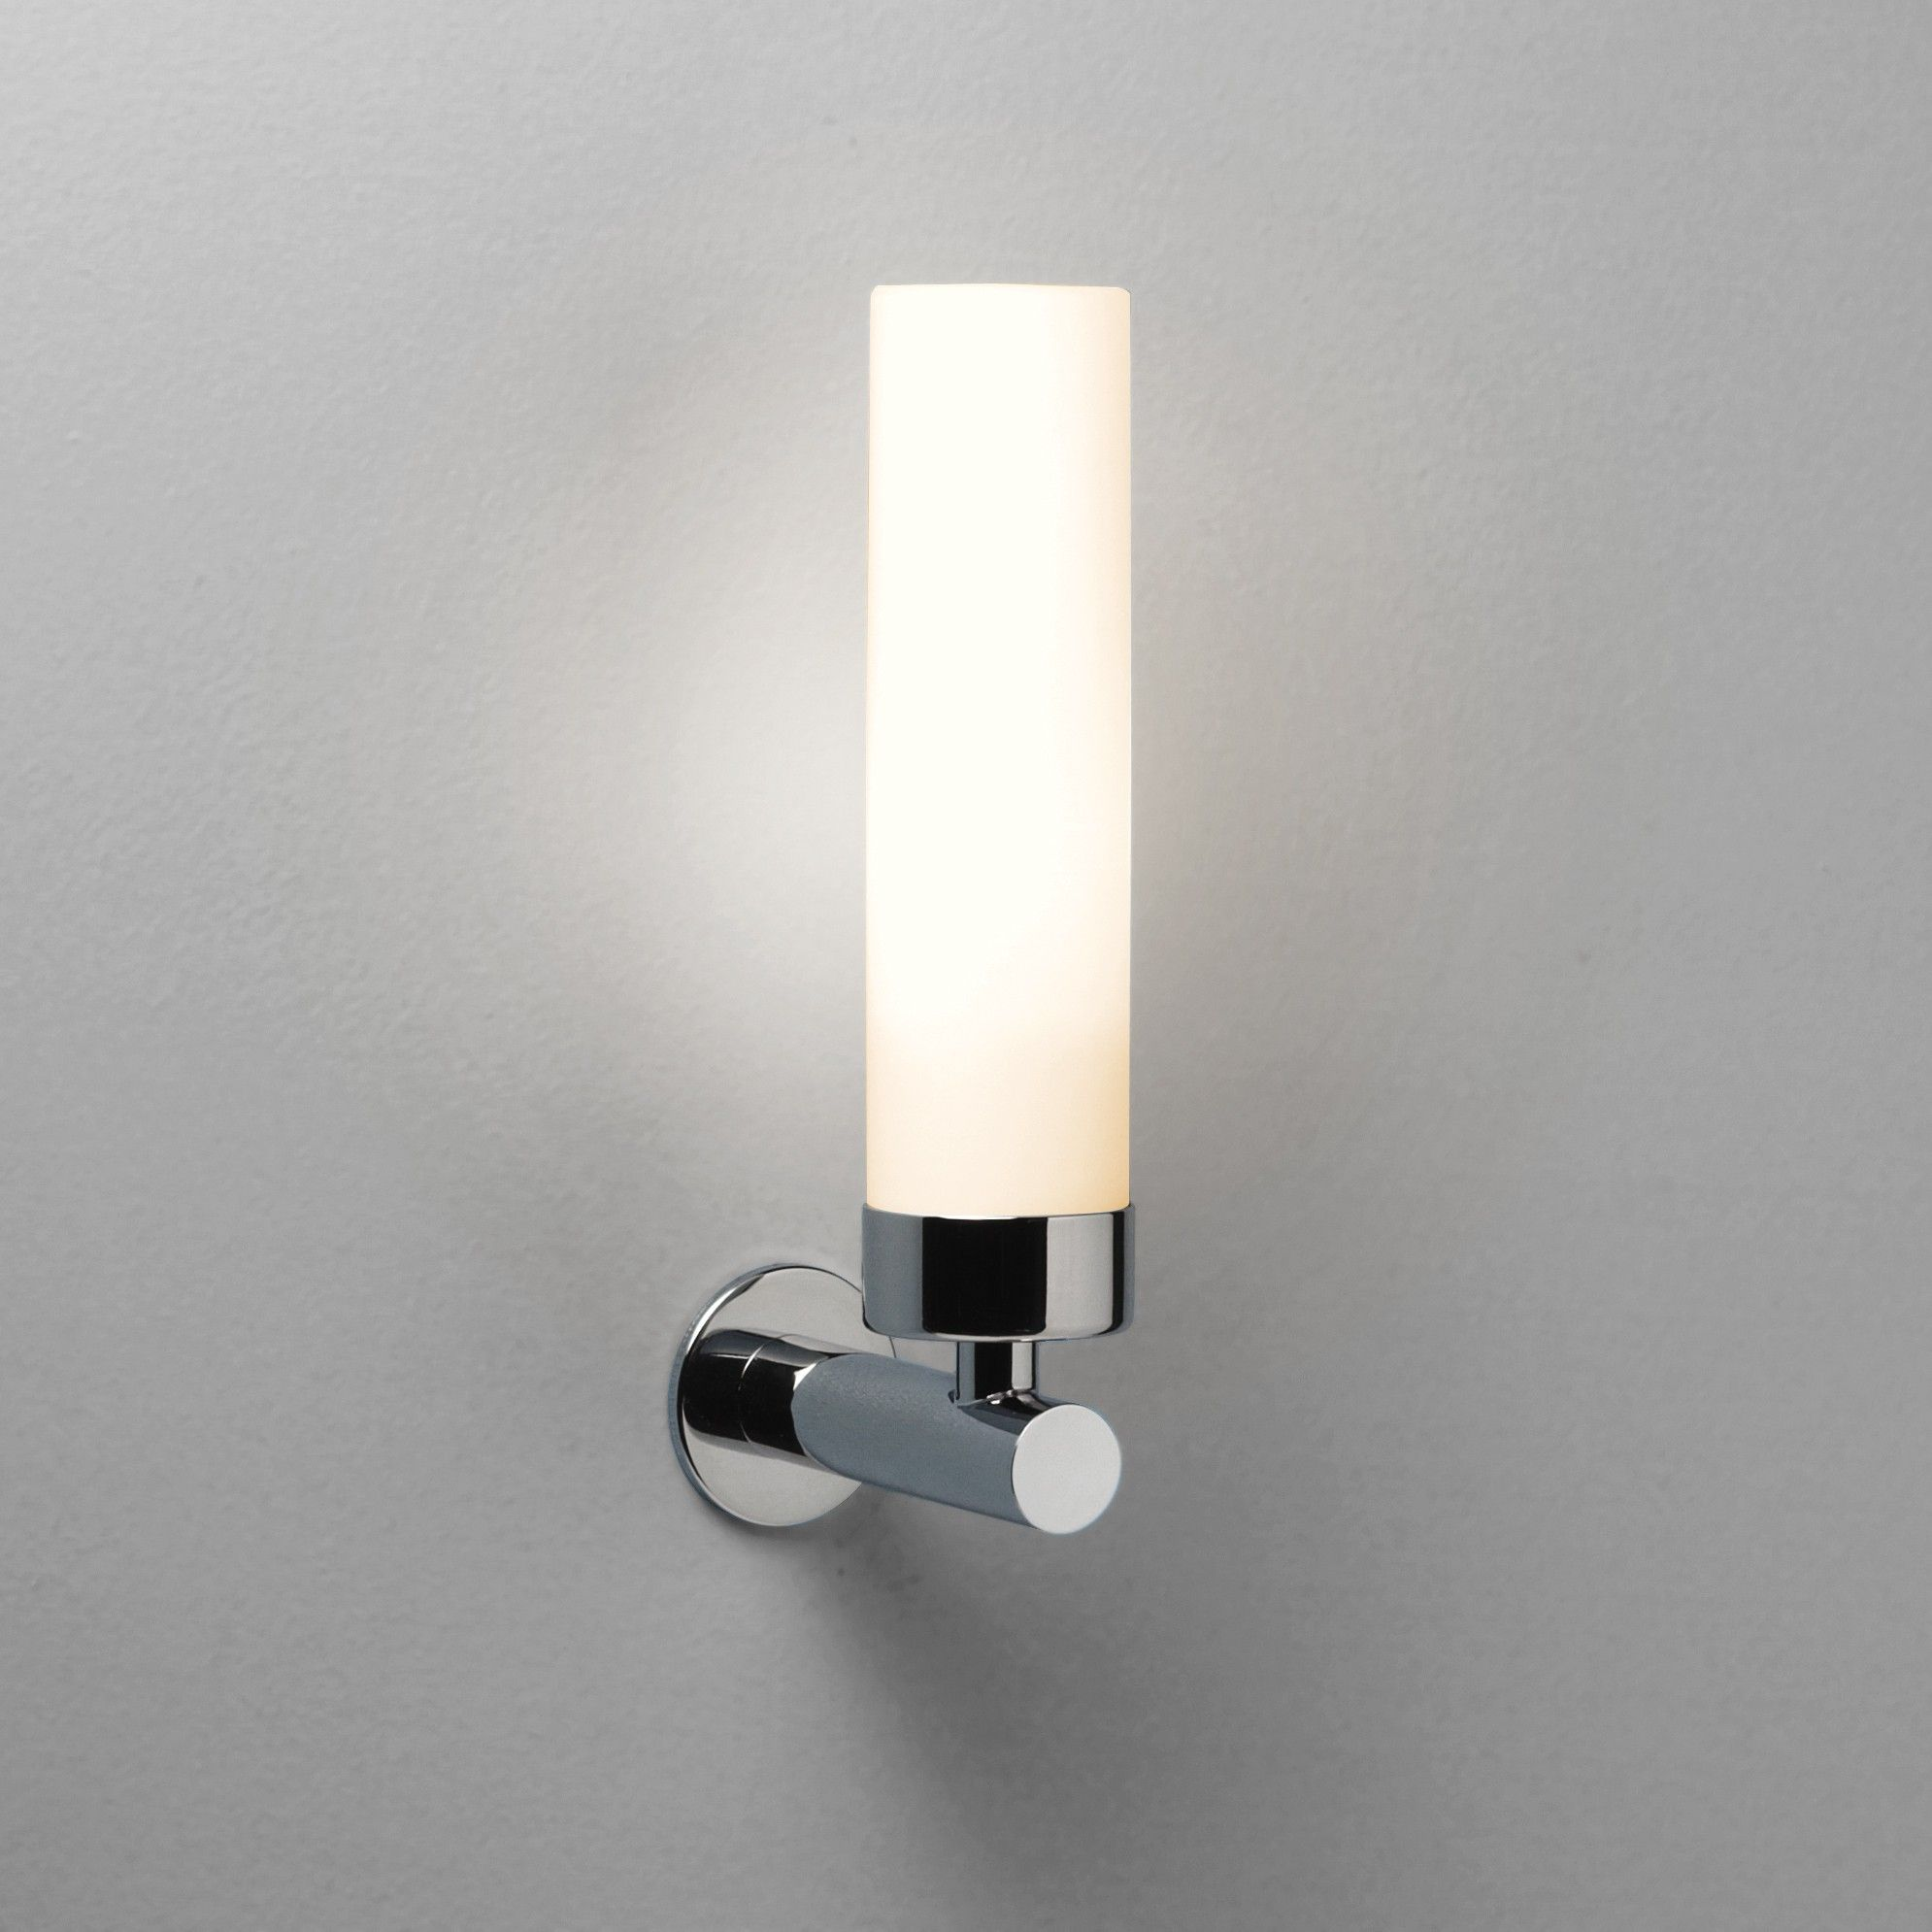 interesting bathroom light fixtures%0A Sherwood lighting center Astro Bathroom Tube wall light